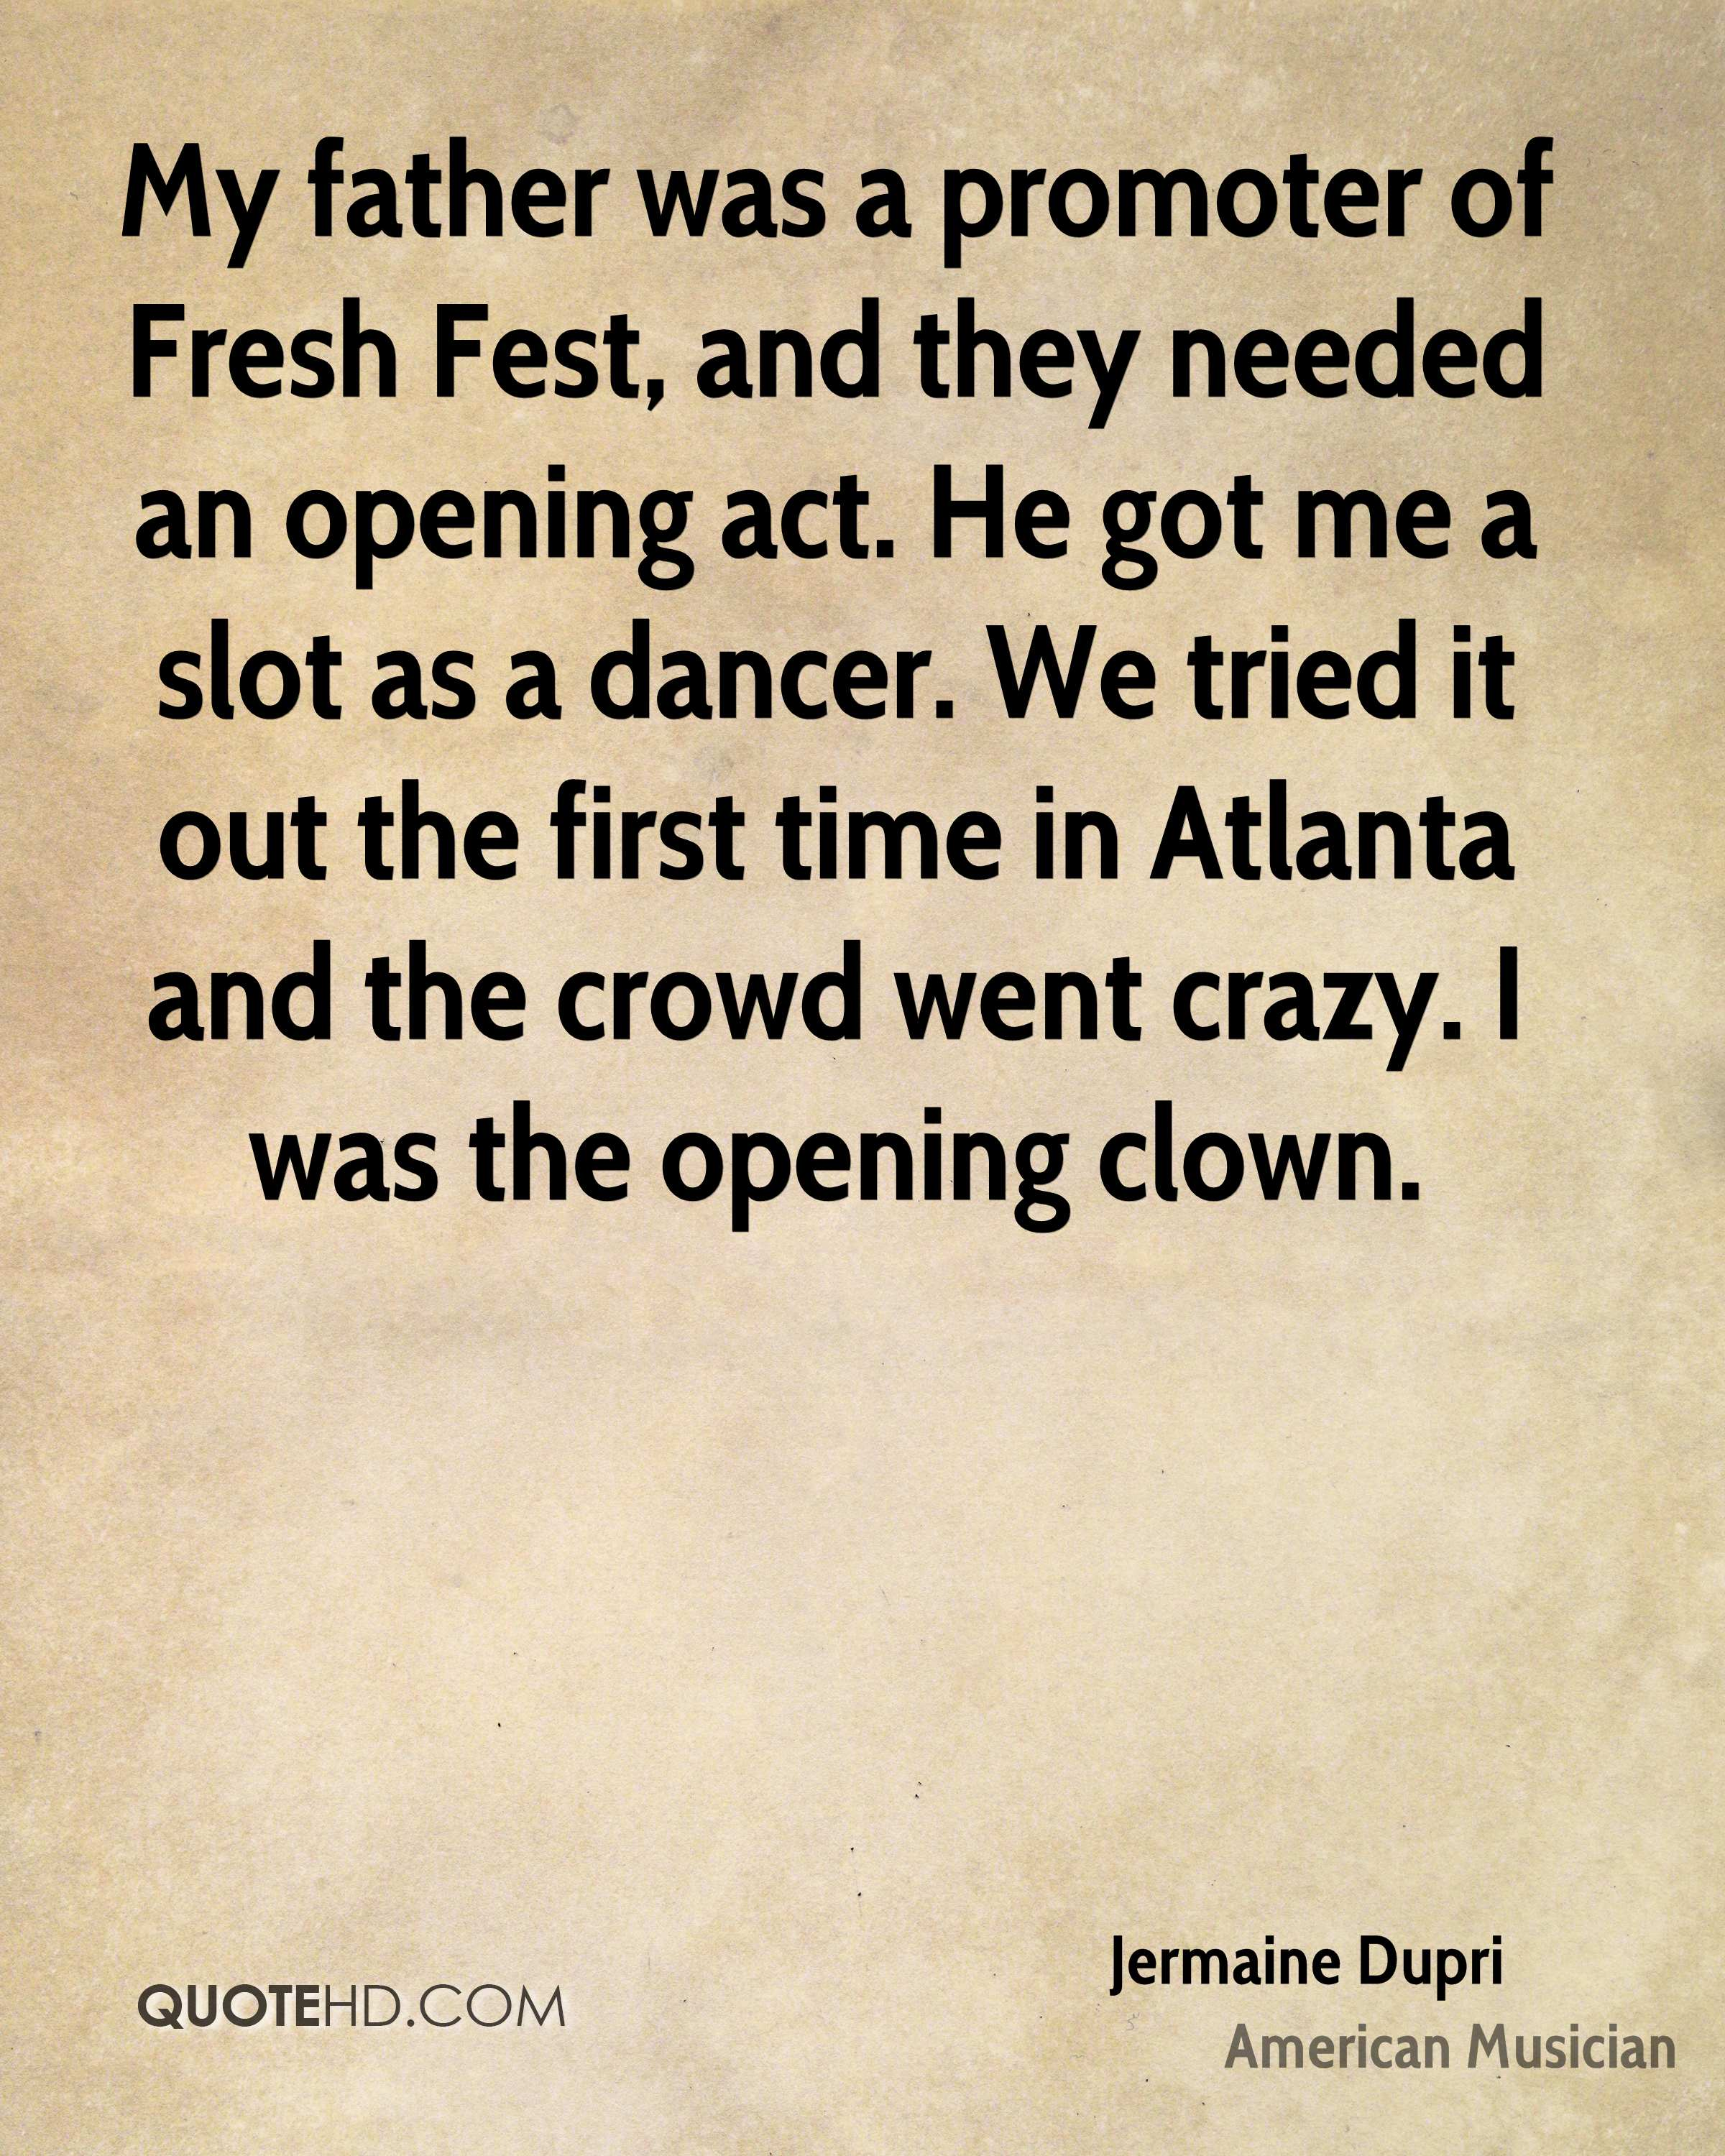 My father was a promoter of Fresh Fest, and they needed an opening act. He got me a slot as a dancer. We tried it out the first time in Atlanta and the crowd went crazy. I was the opening clown.